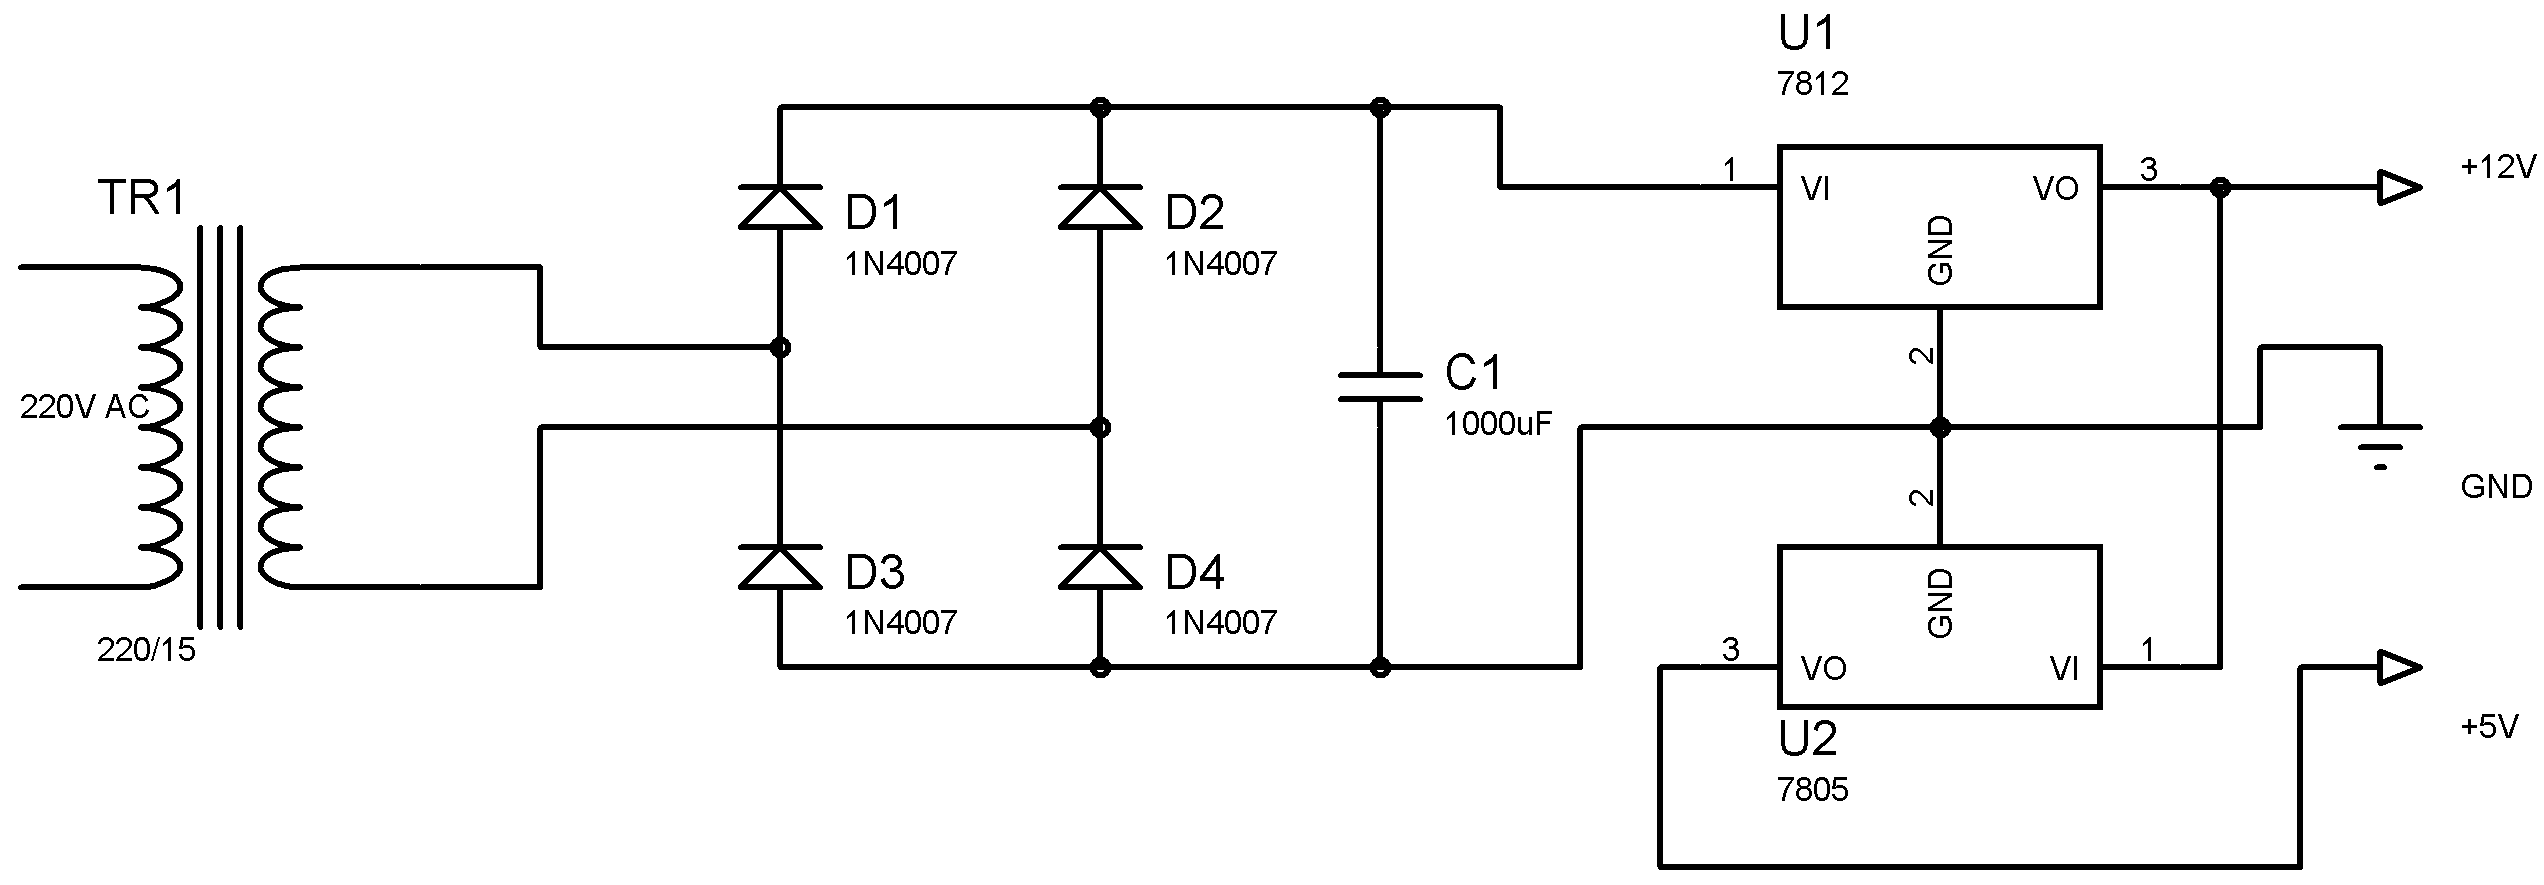 water level indicator project with circuit diagram ford tractor wiring controller using pic microcontroller